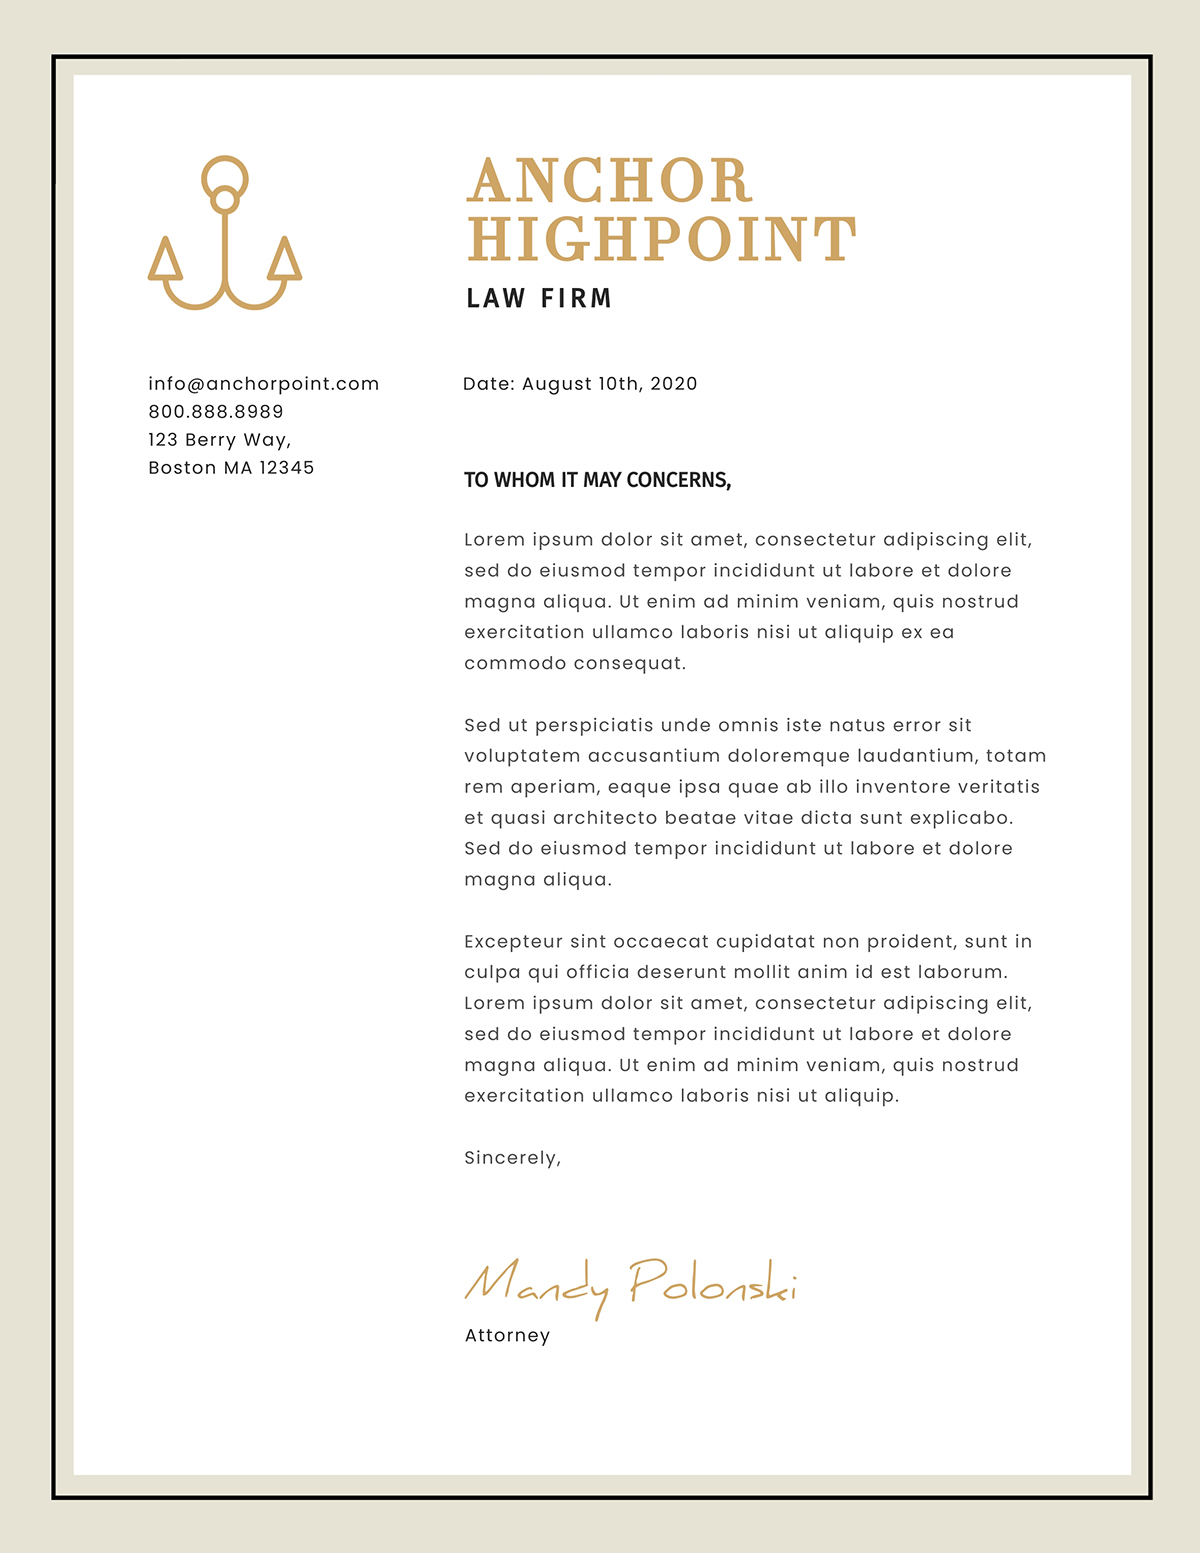 A law firm letterhead template available in Visme.